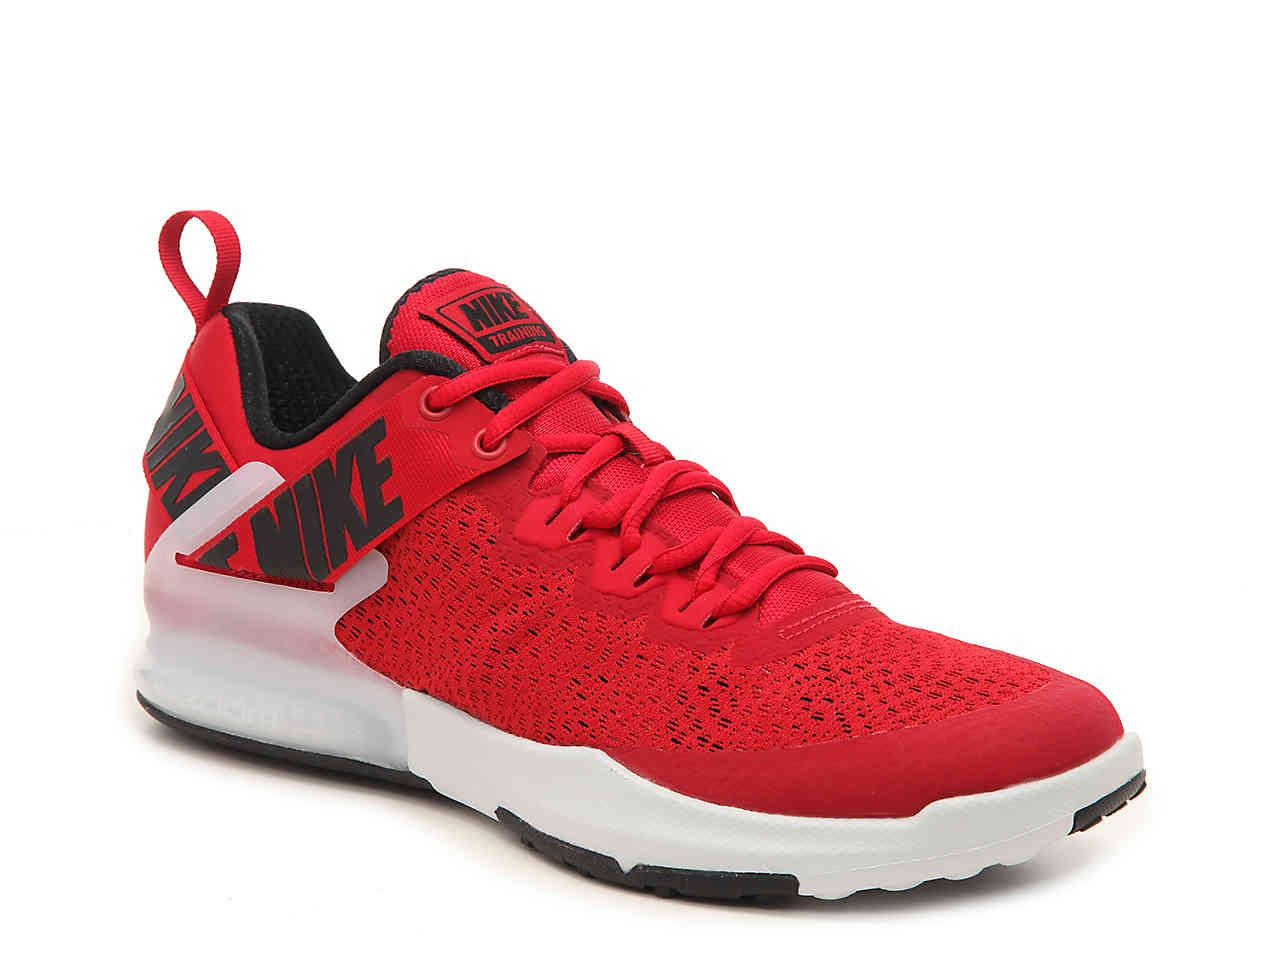 313a78f66ed0 Nike Zoom Domination Tr 2 Training Shoe in Red for Men - Lyst